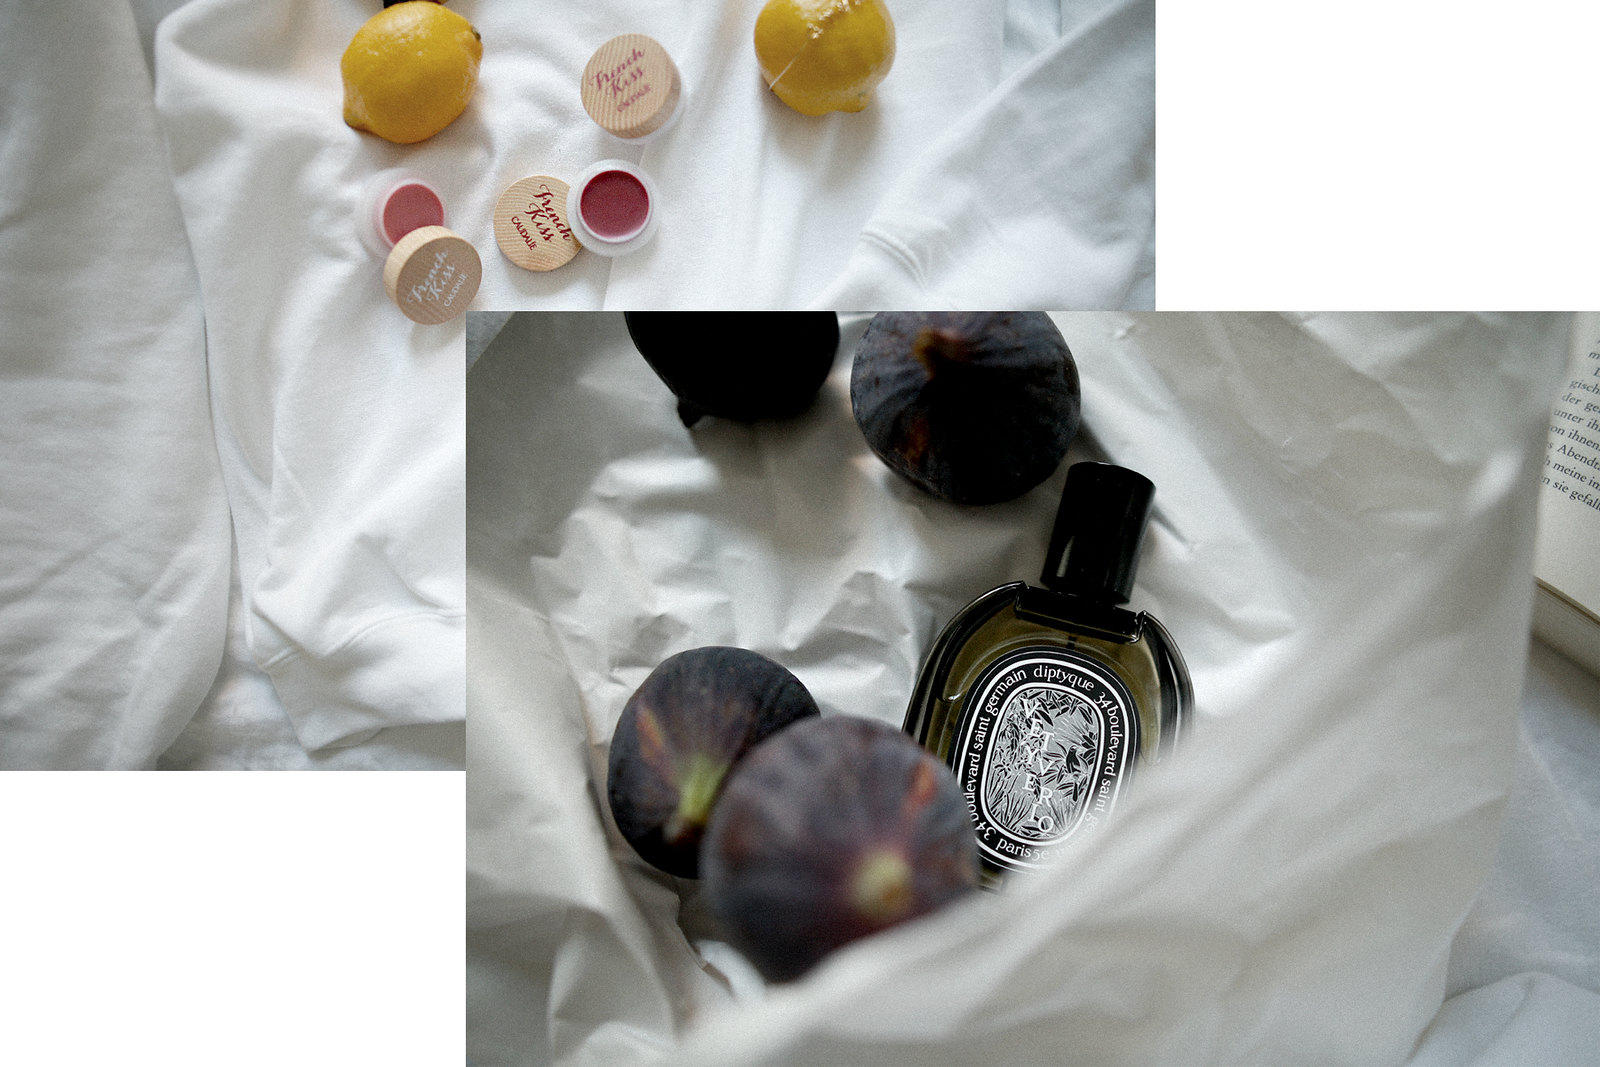 beauty favourites september paula's choice diptyque caudalie fruit home relax reading weekend personal style minimal chic photography beautyblogger germany beauty bloggers cats & dogs beauty blog ricarda schernus max bechmann fotografie film düsseldorf 2